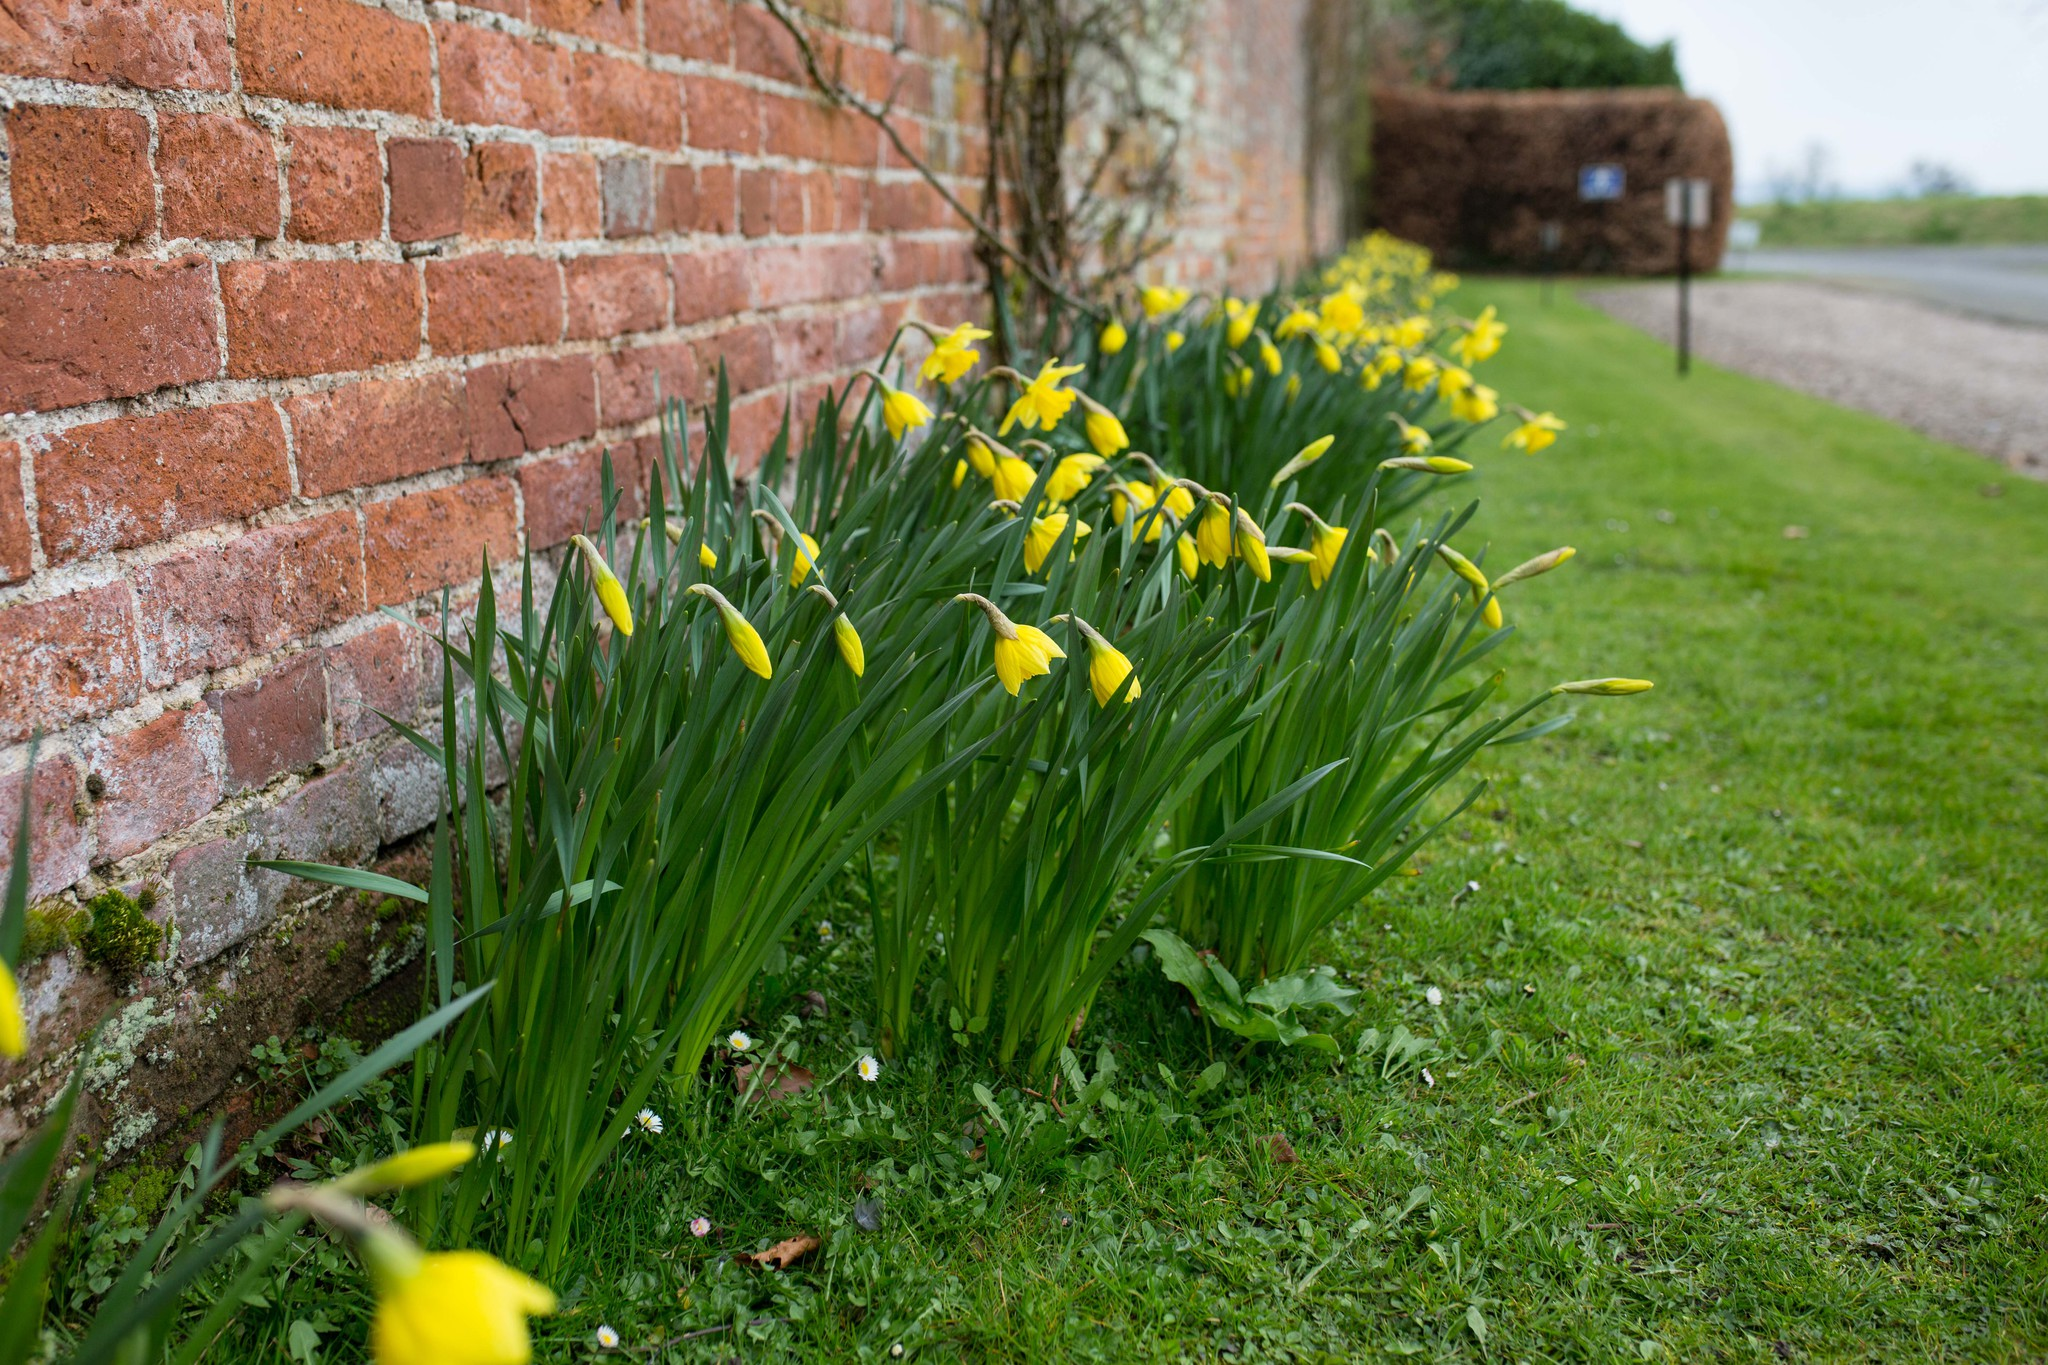 Delbury Hall daffodils in early bloom Spring wedding